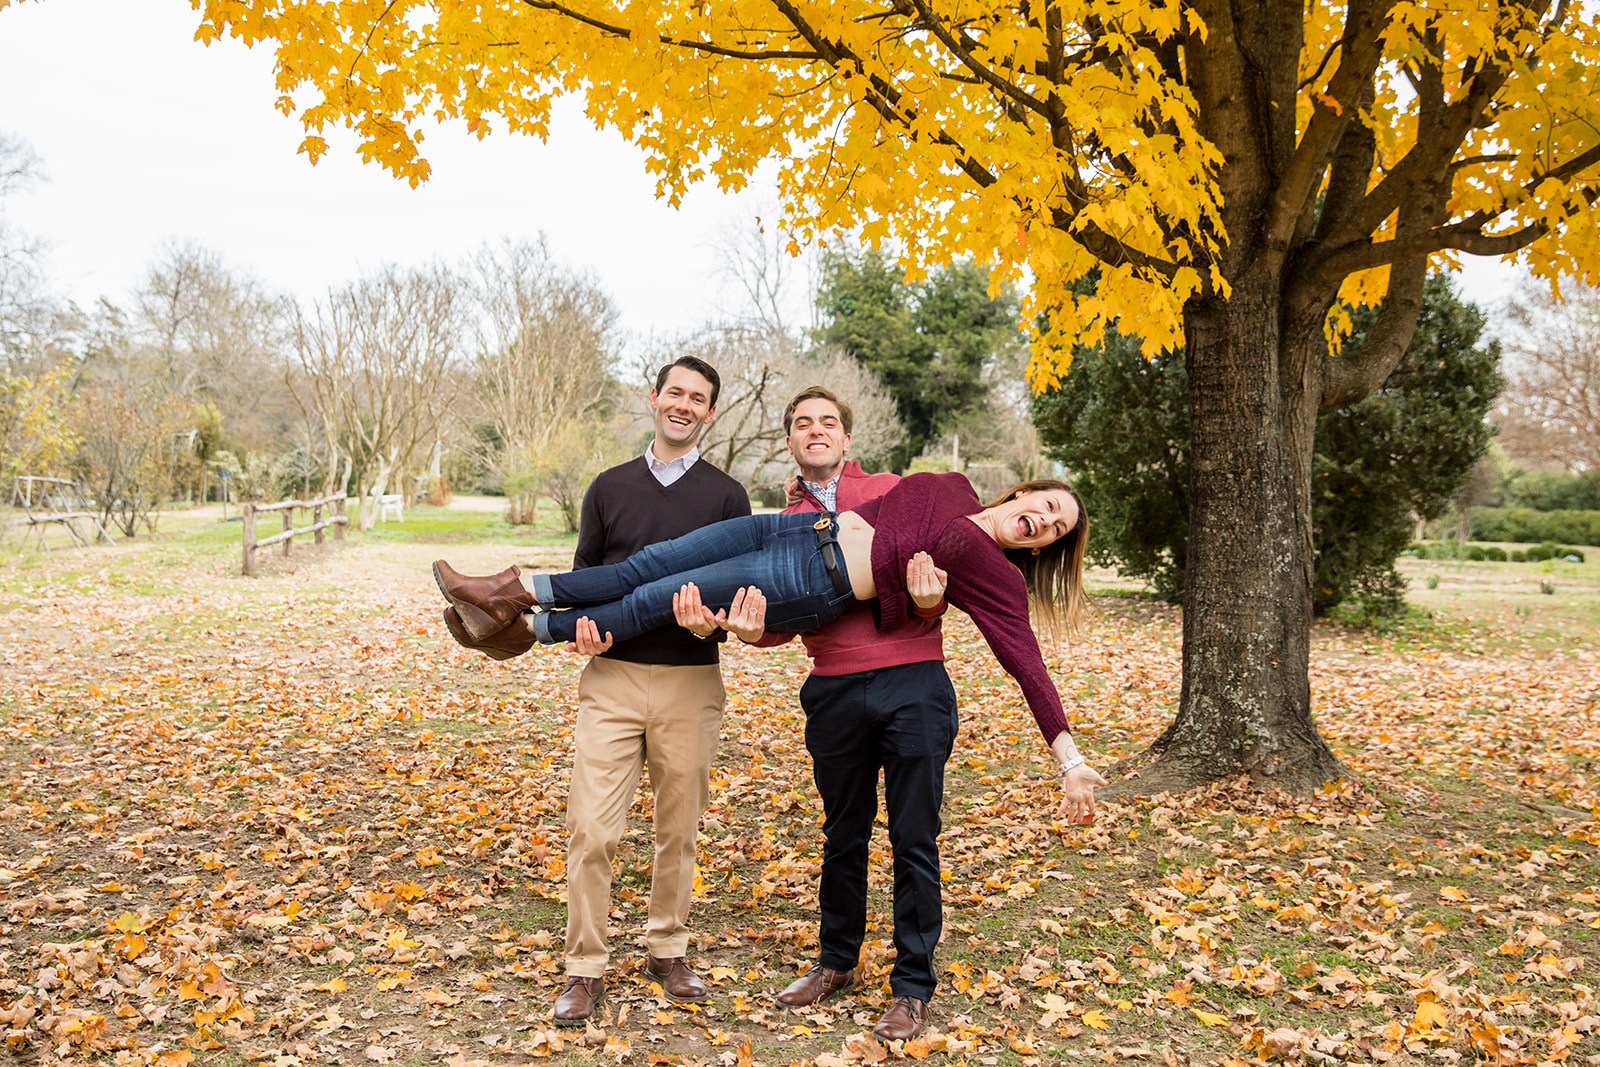 Large Fall Family Photo Shoot With Adult Children at Tuckahoe Plantation - Image Property of www.j-dphoto.com